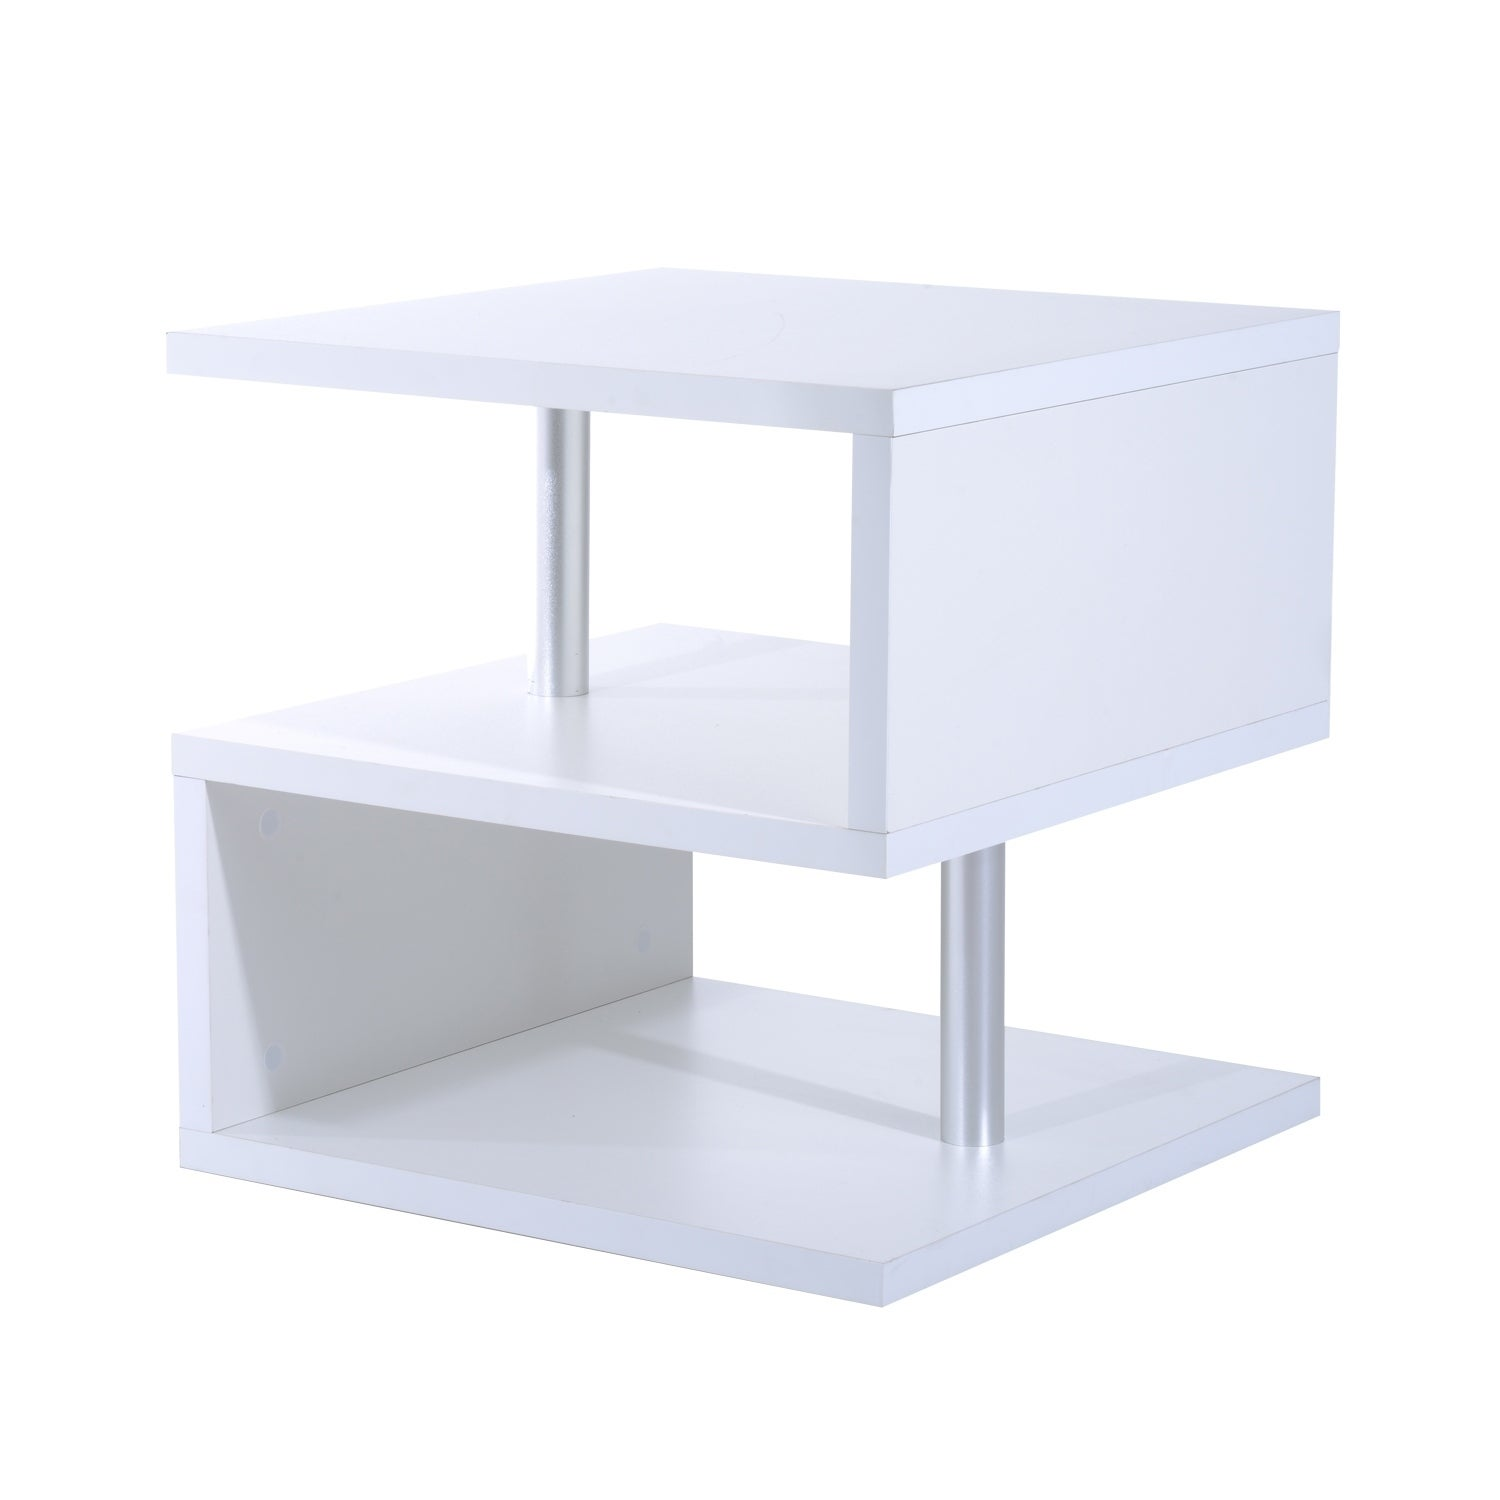 White modern contemporary multi level s shaped end table accent white modern contemporary multi level s shaped end table accent side geotapseo Gallery